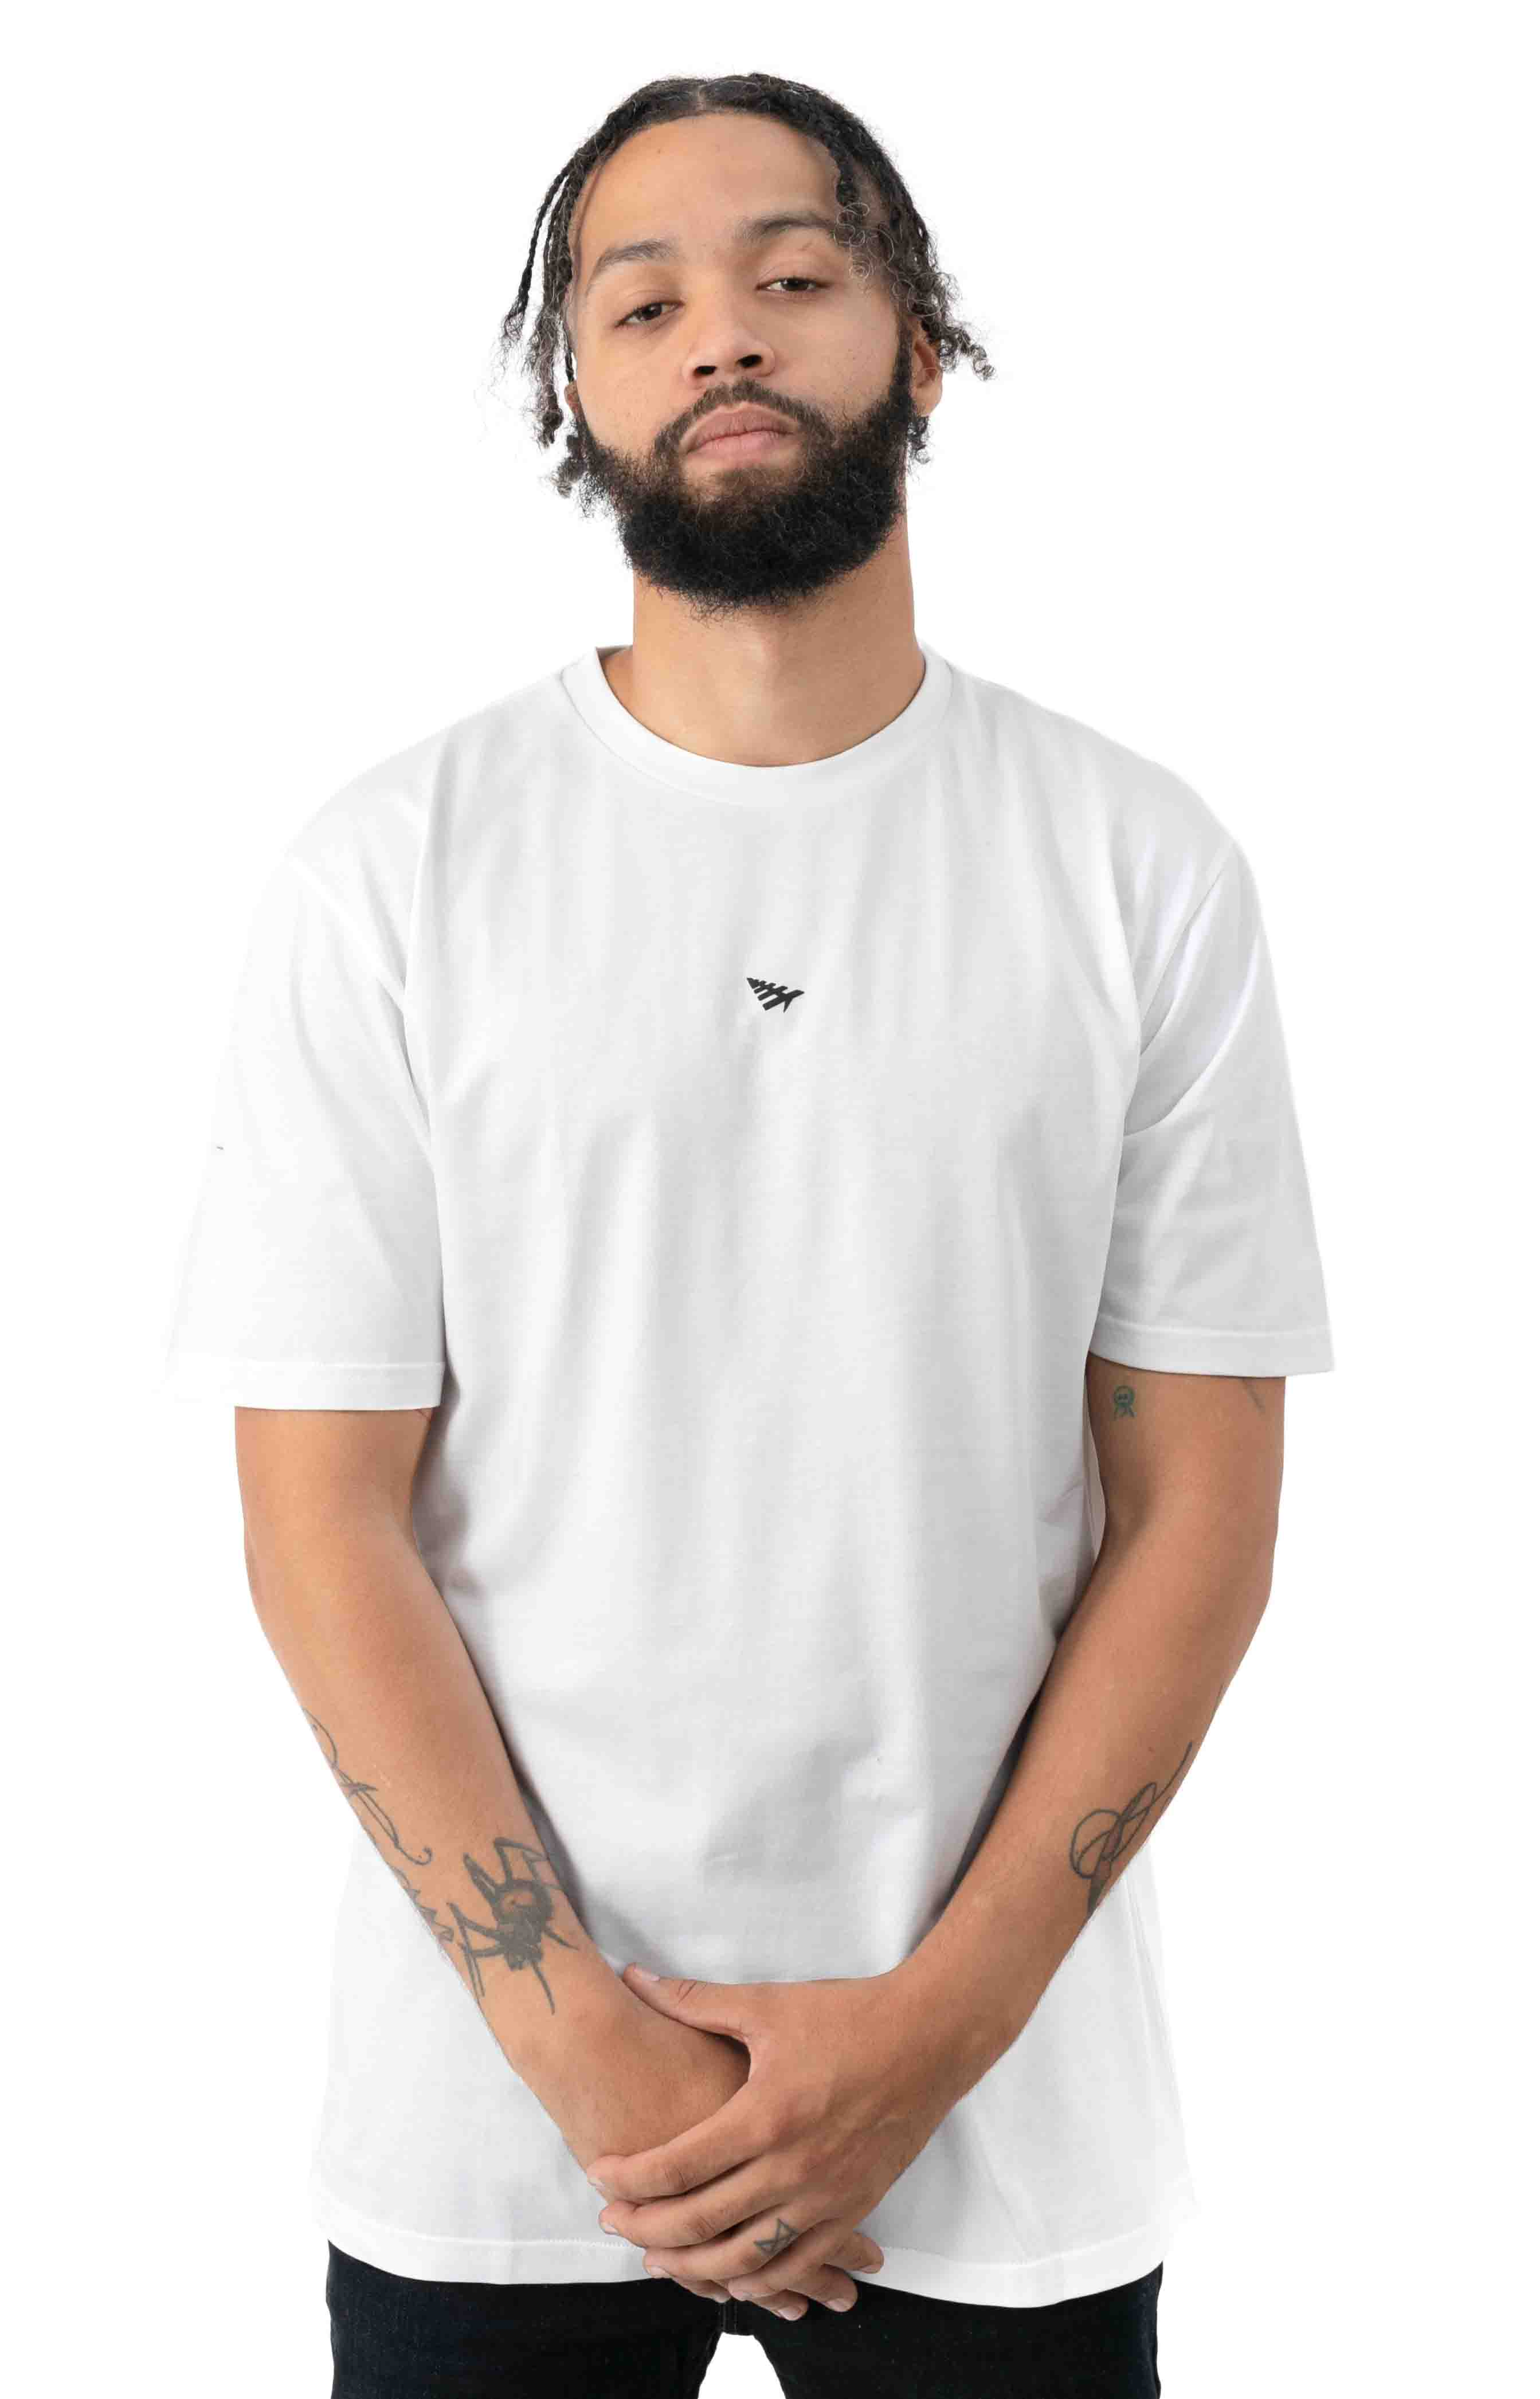 Headspin T-Shirt - White